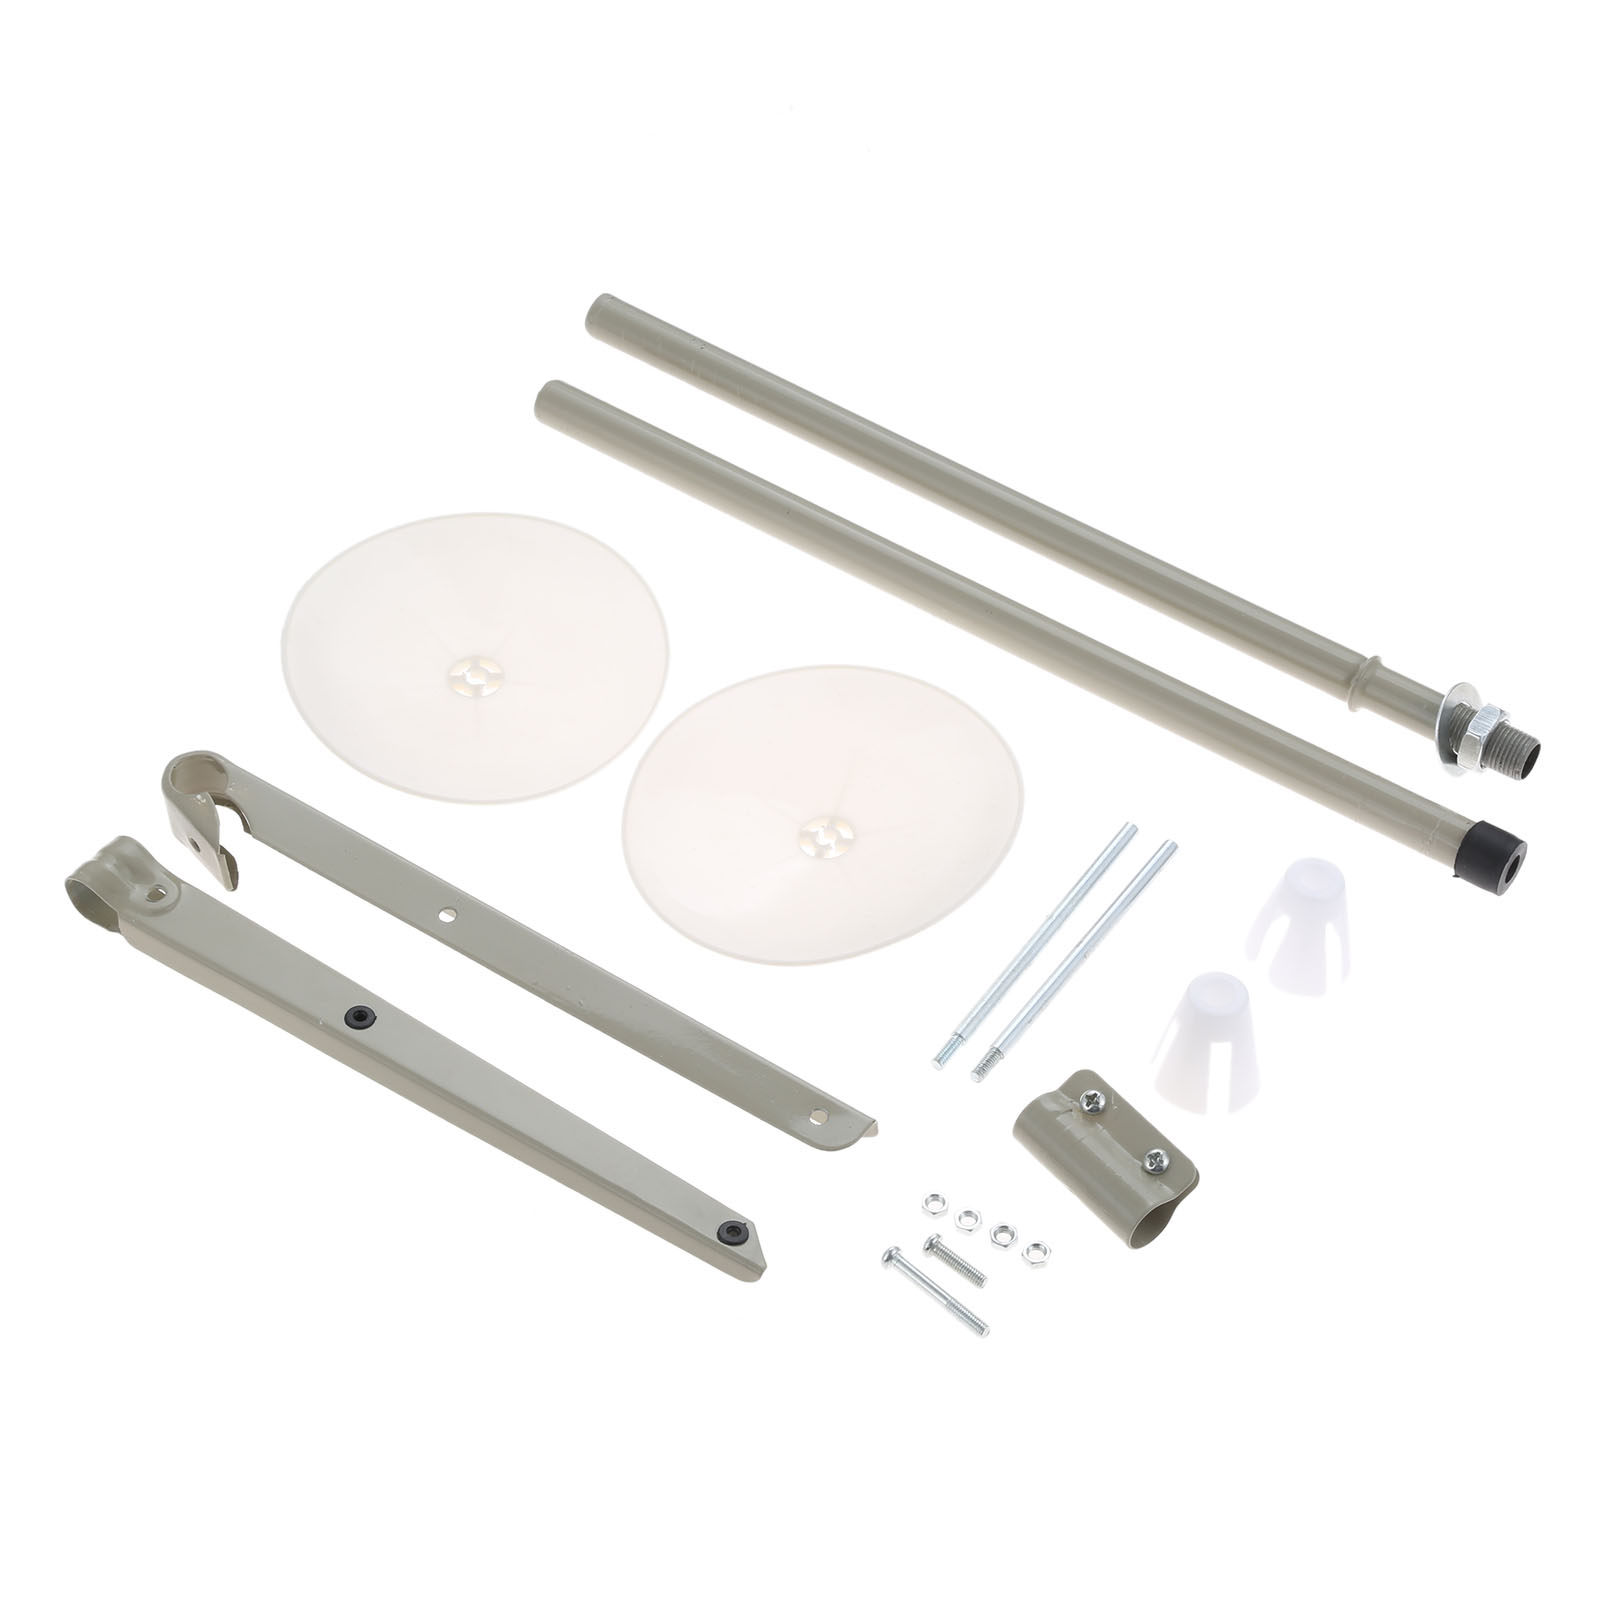 Image 4 - 1 Set 2 Spool Thread Stand Pipe Thru Top Sewing Machine Cone Spool Thread Holder Fixer Metal for Industrial Sewing Machines C F2Sewing Tools & Accessory   -